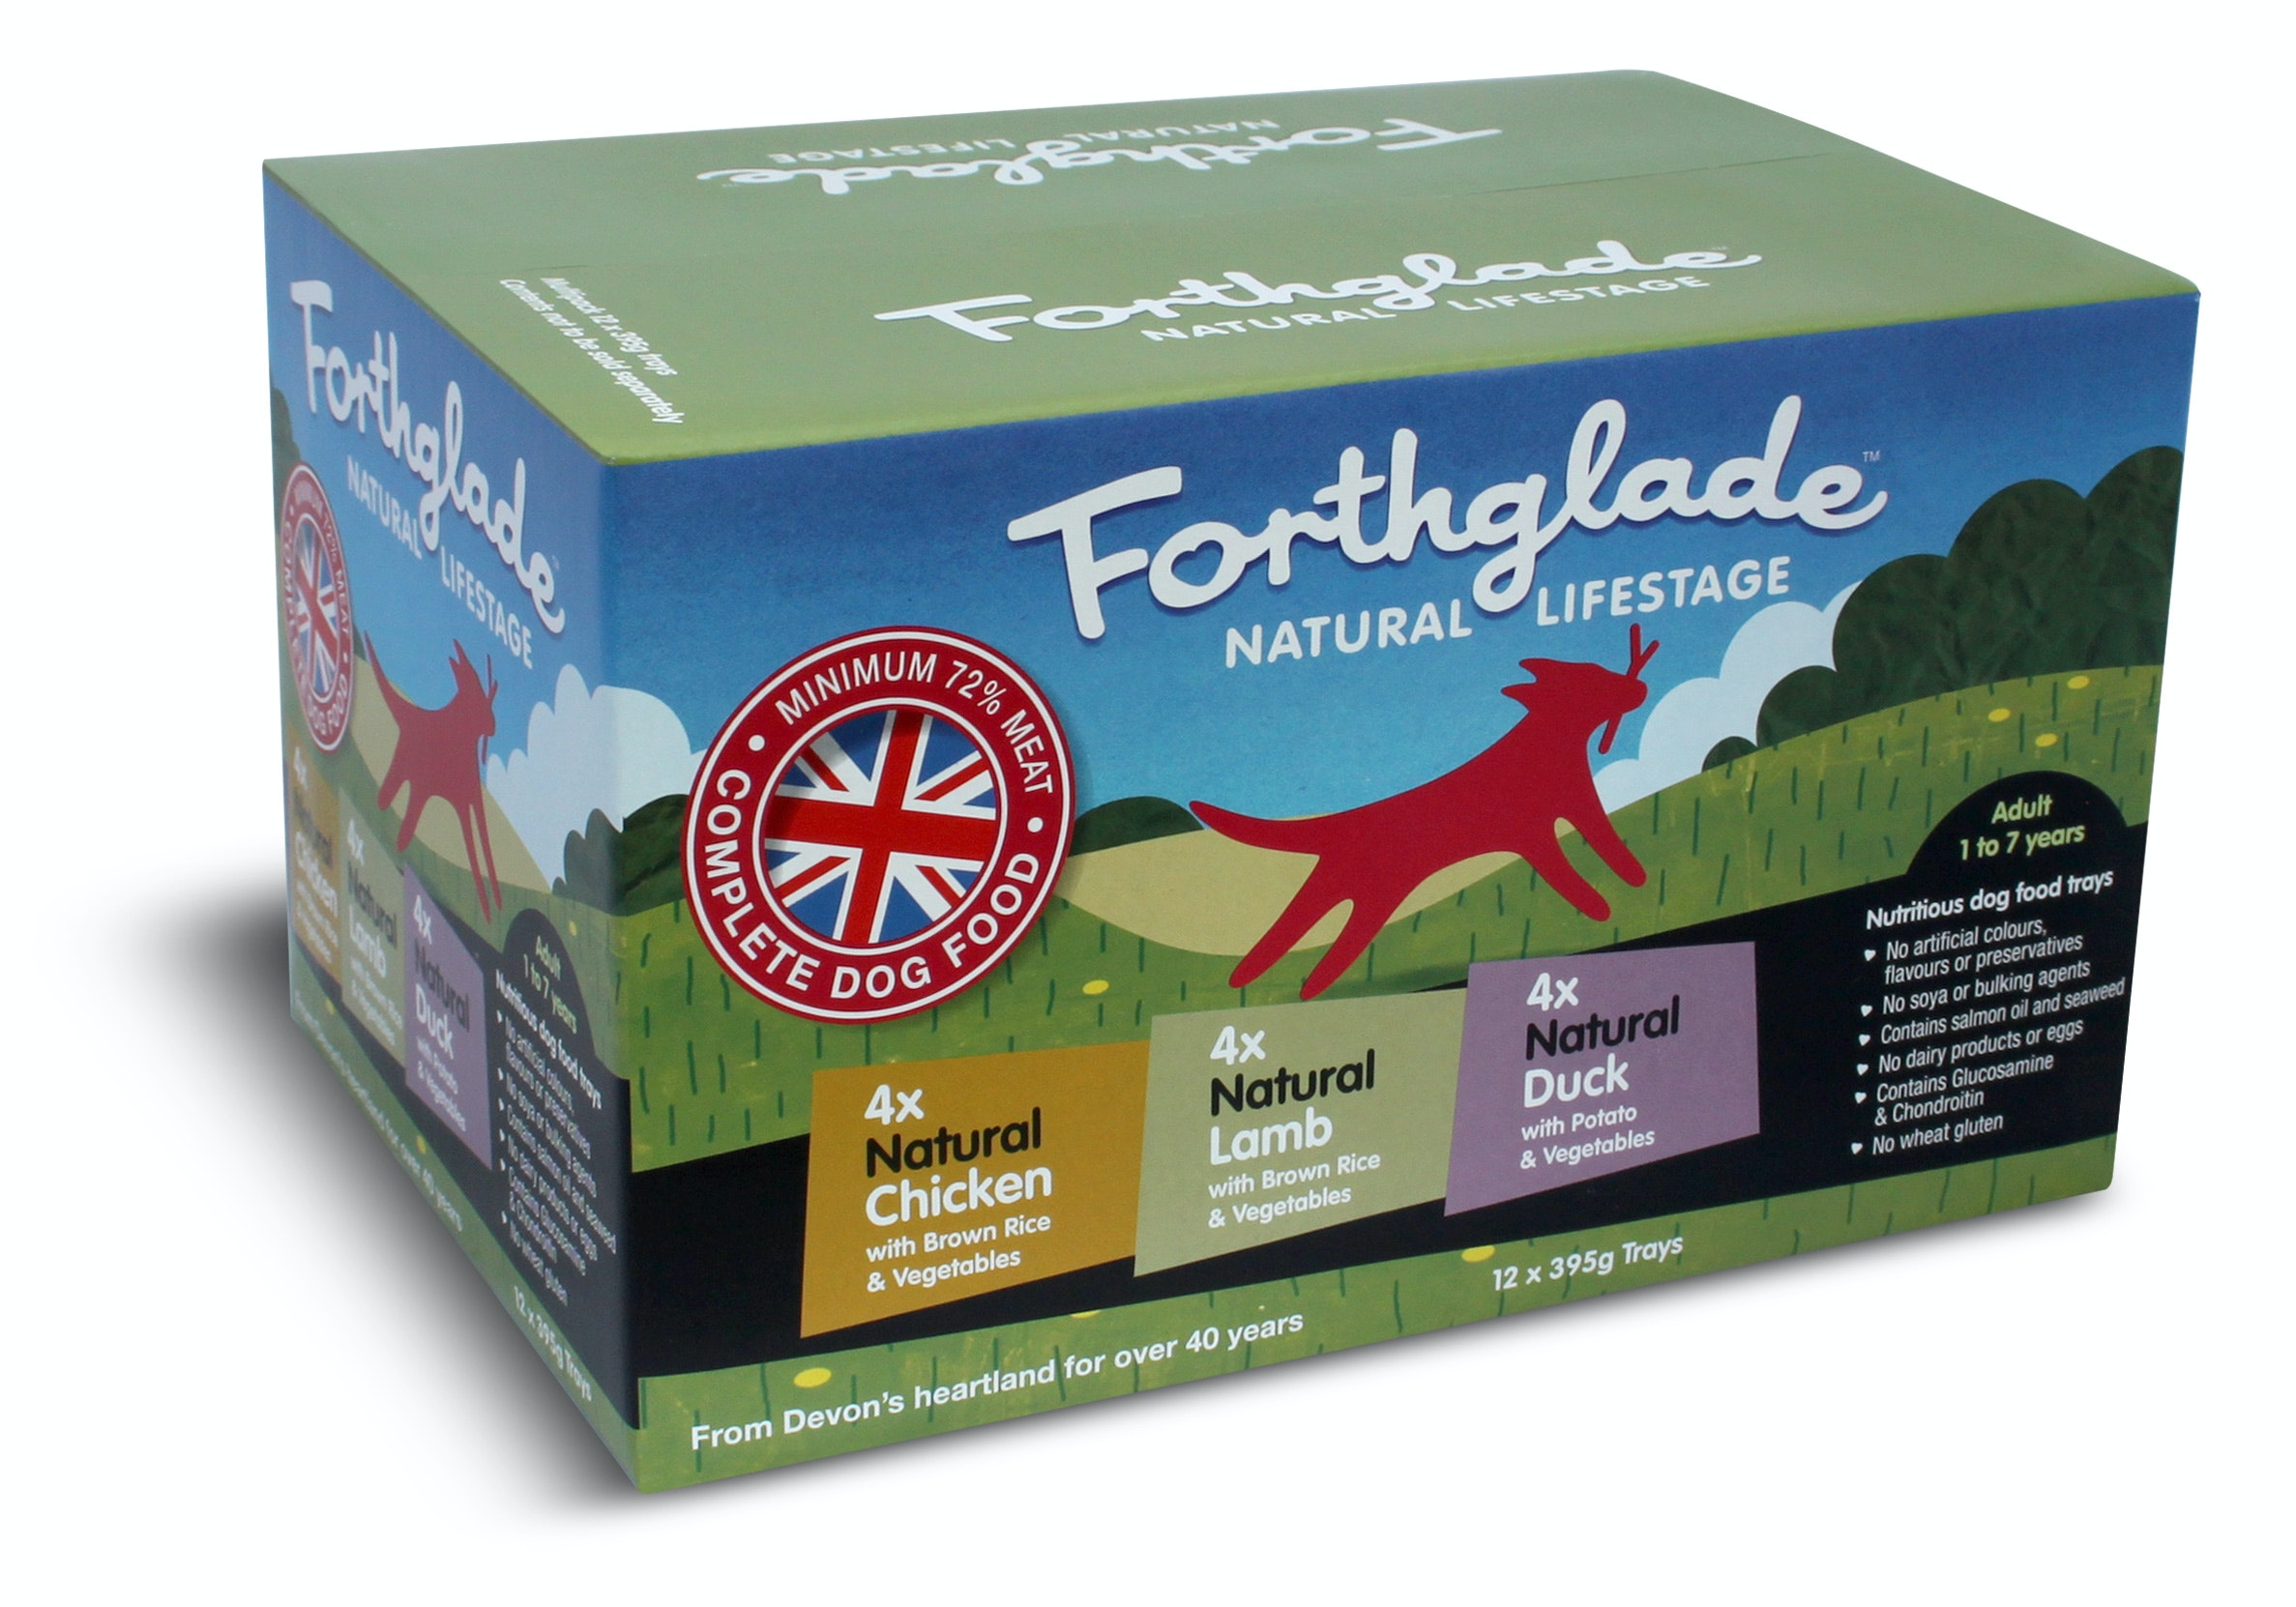 Forthglade sweepstakes